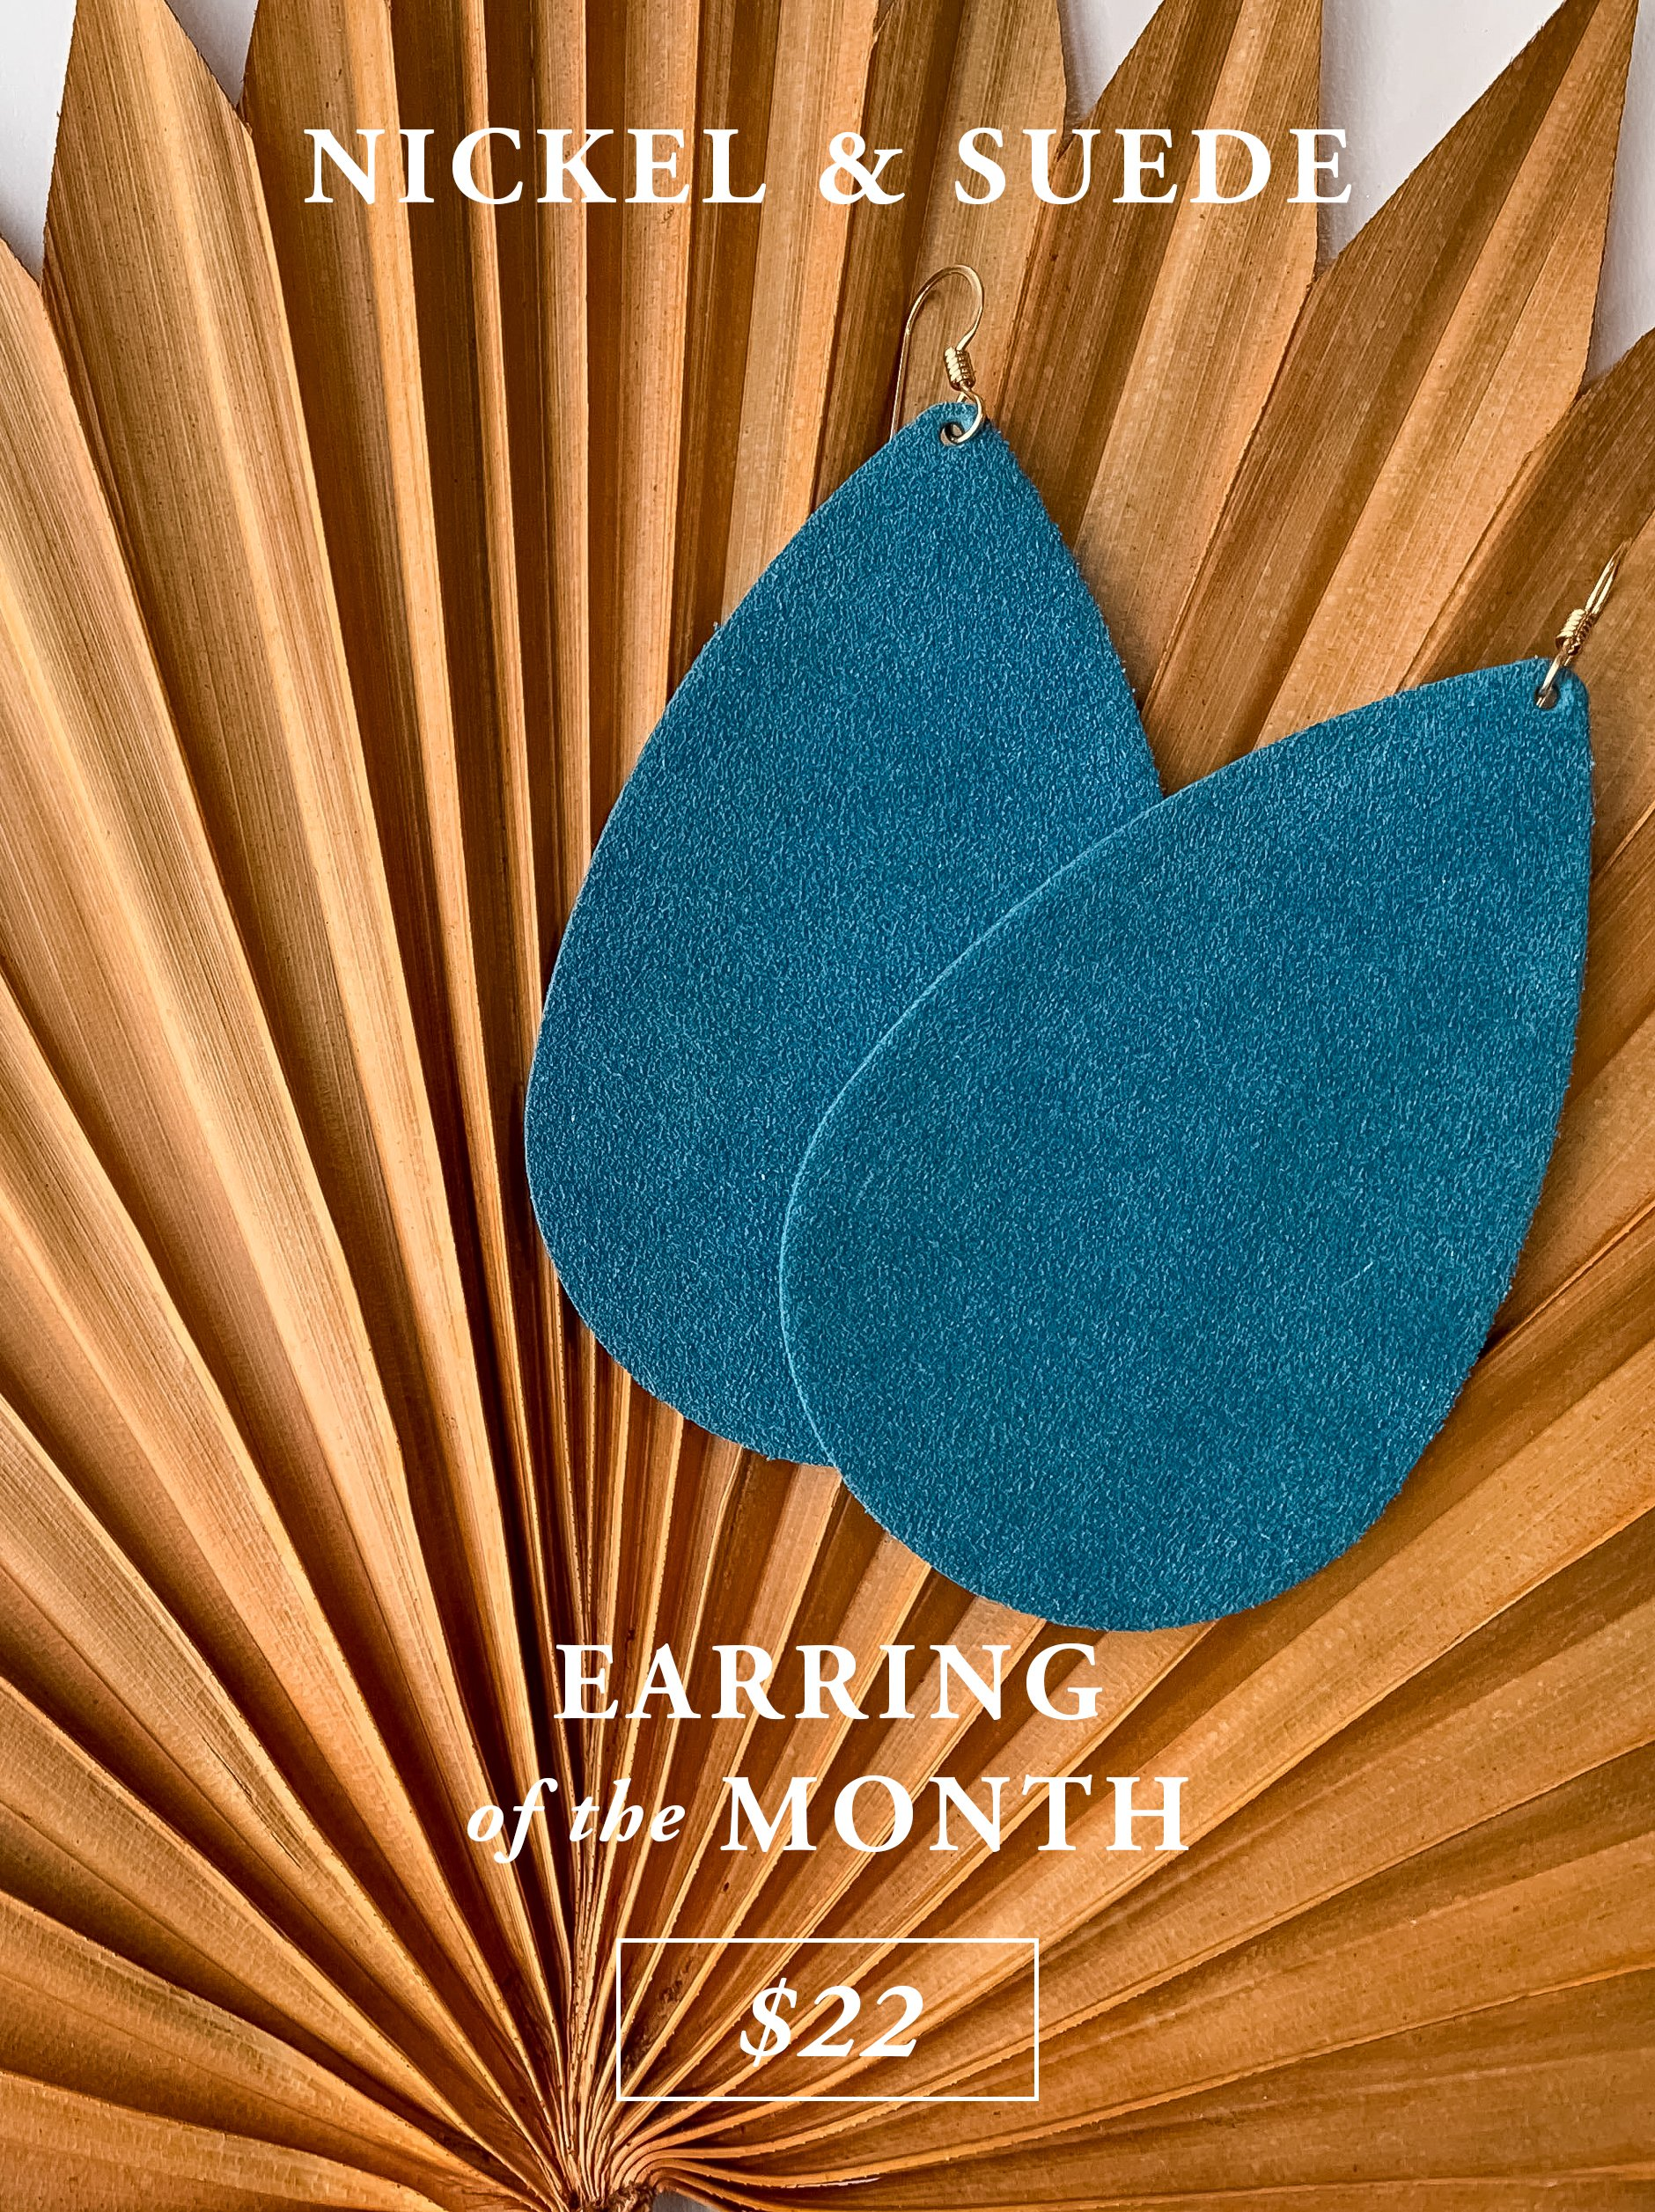 Nickel & Suede Earring of the Month